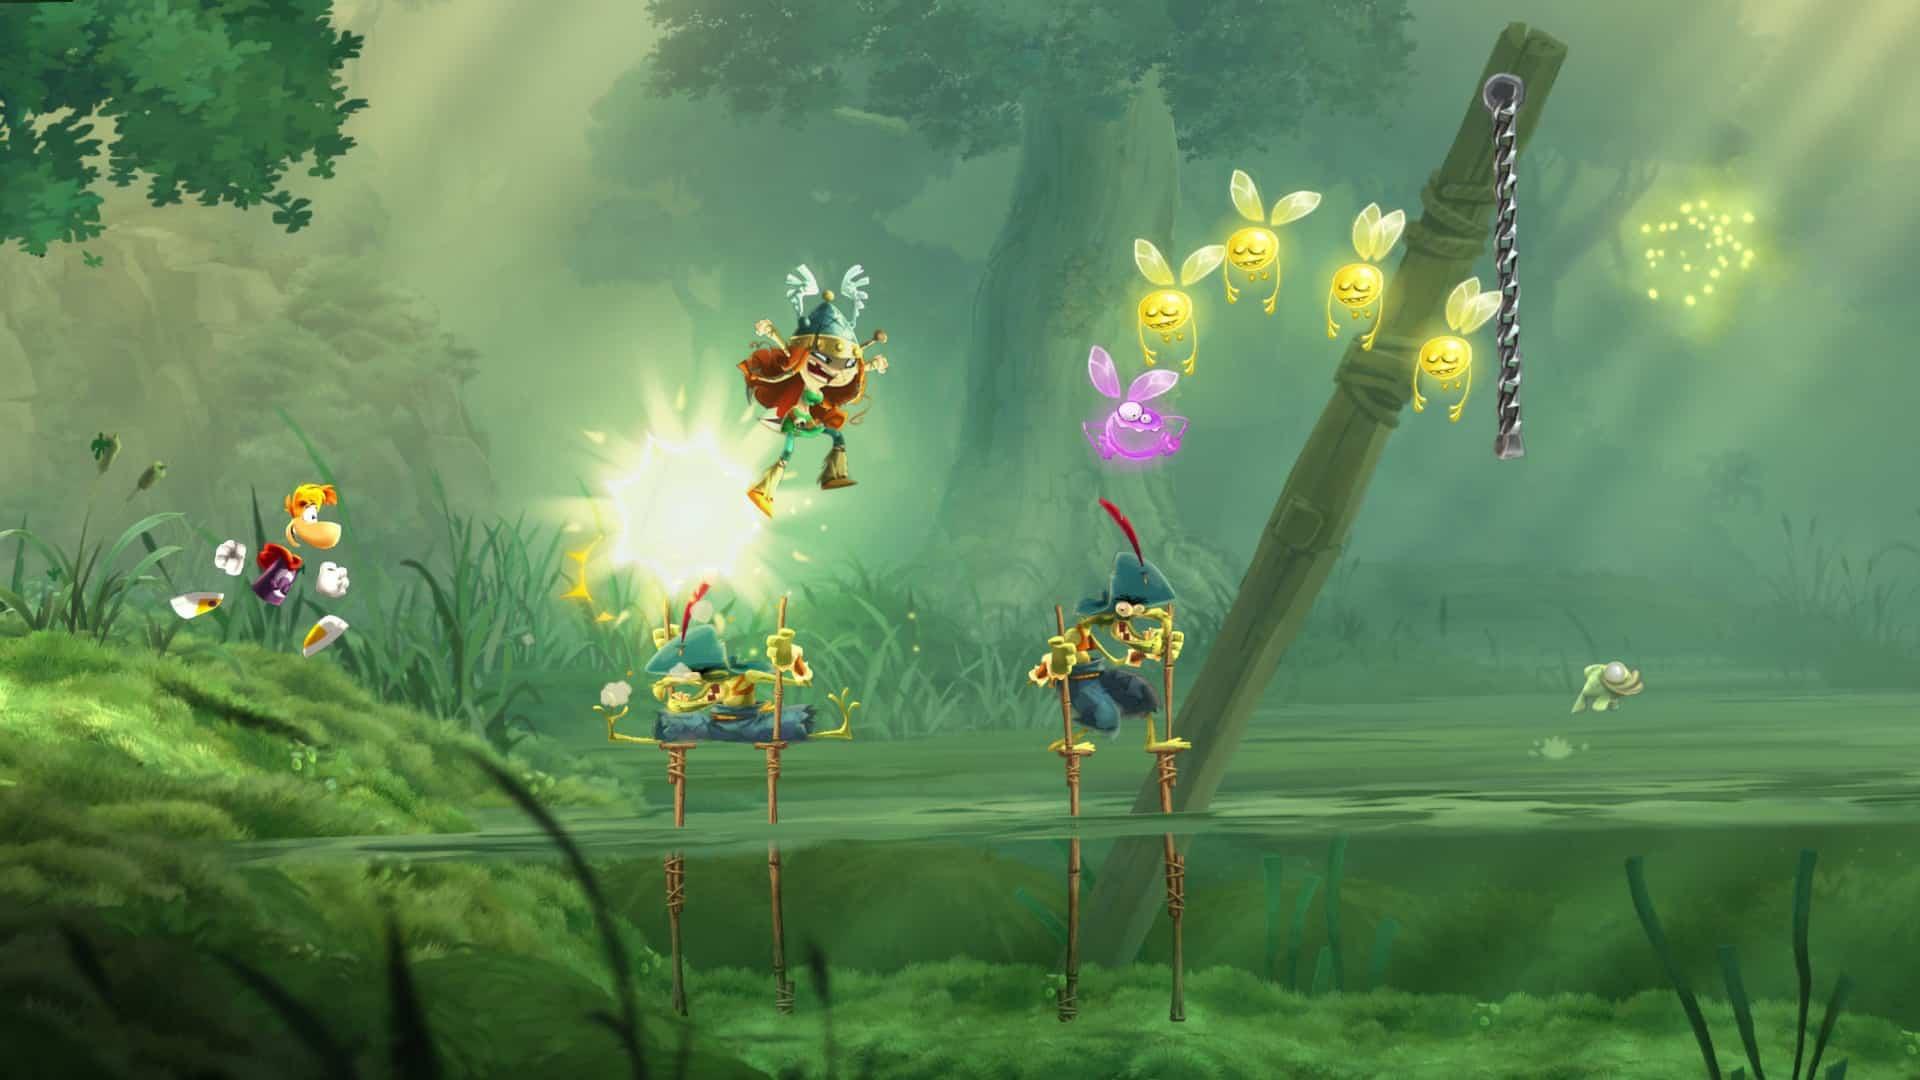 Rayman Legends Ubisoft best game platforming excellence with tons of content